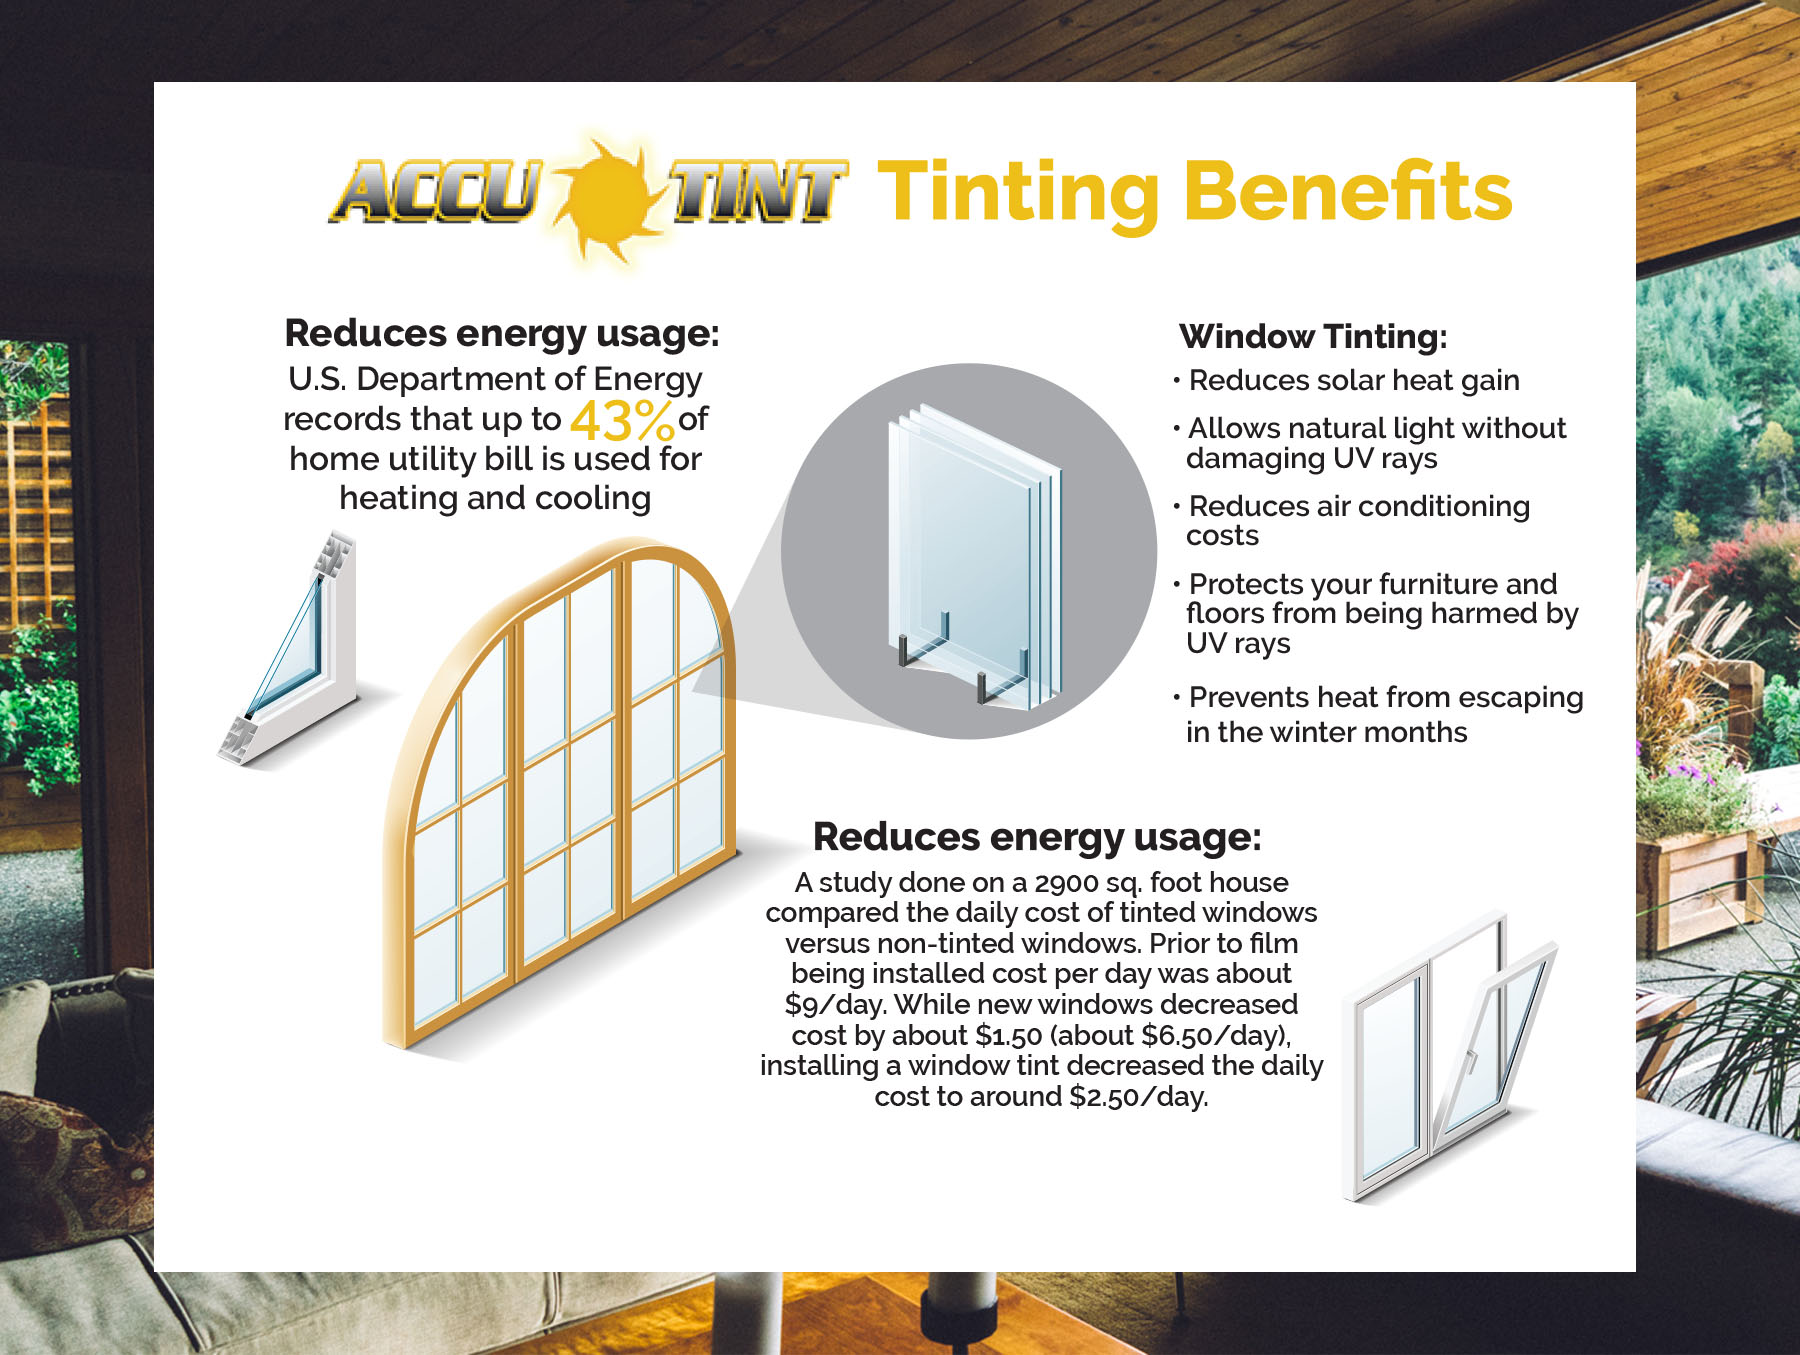 tinting-benefits-infographic